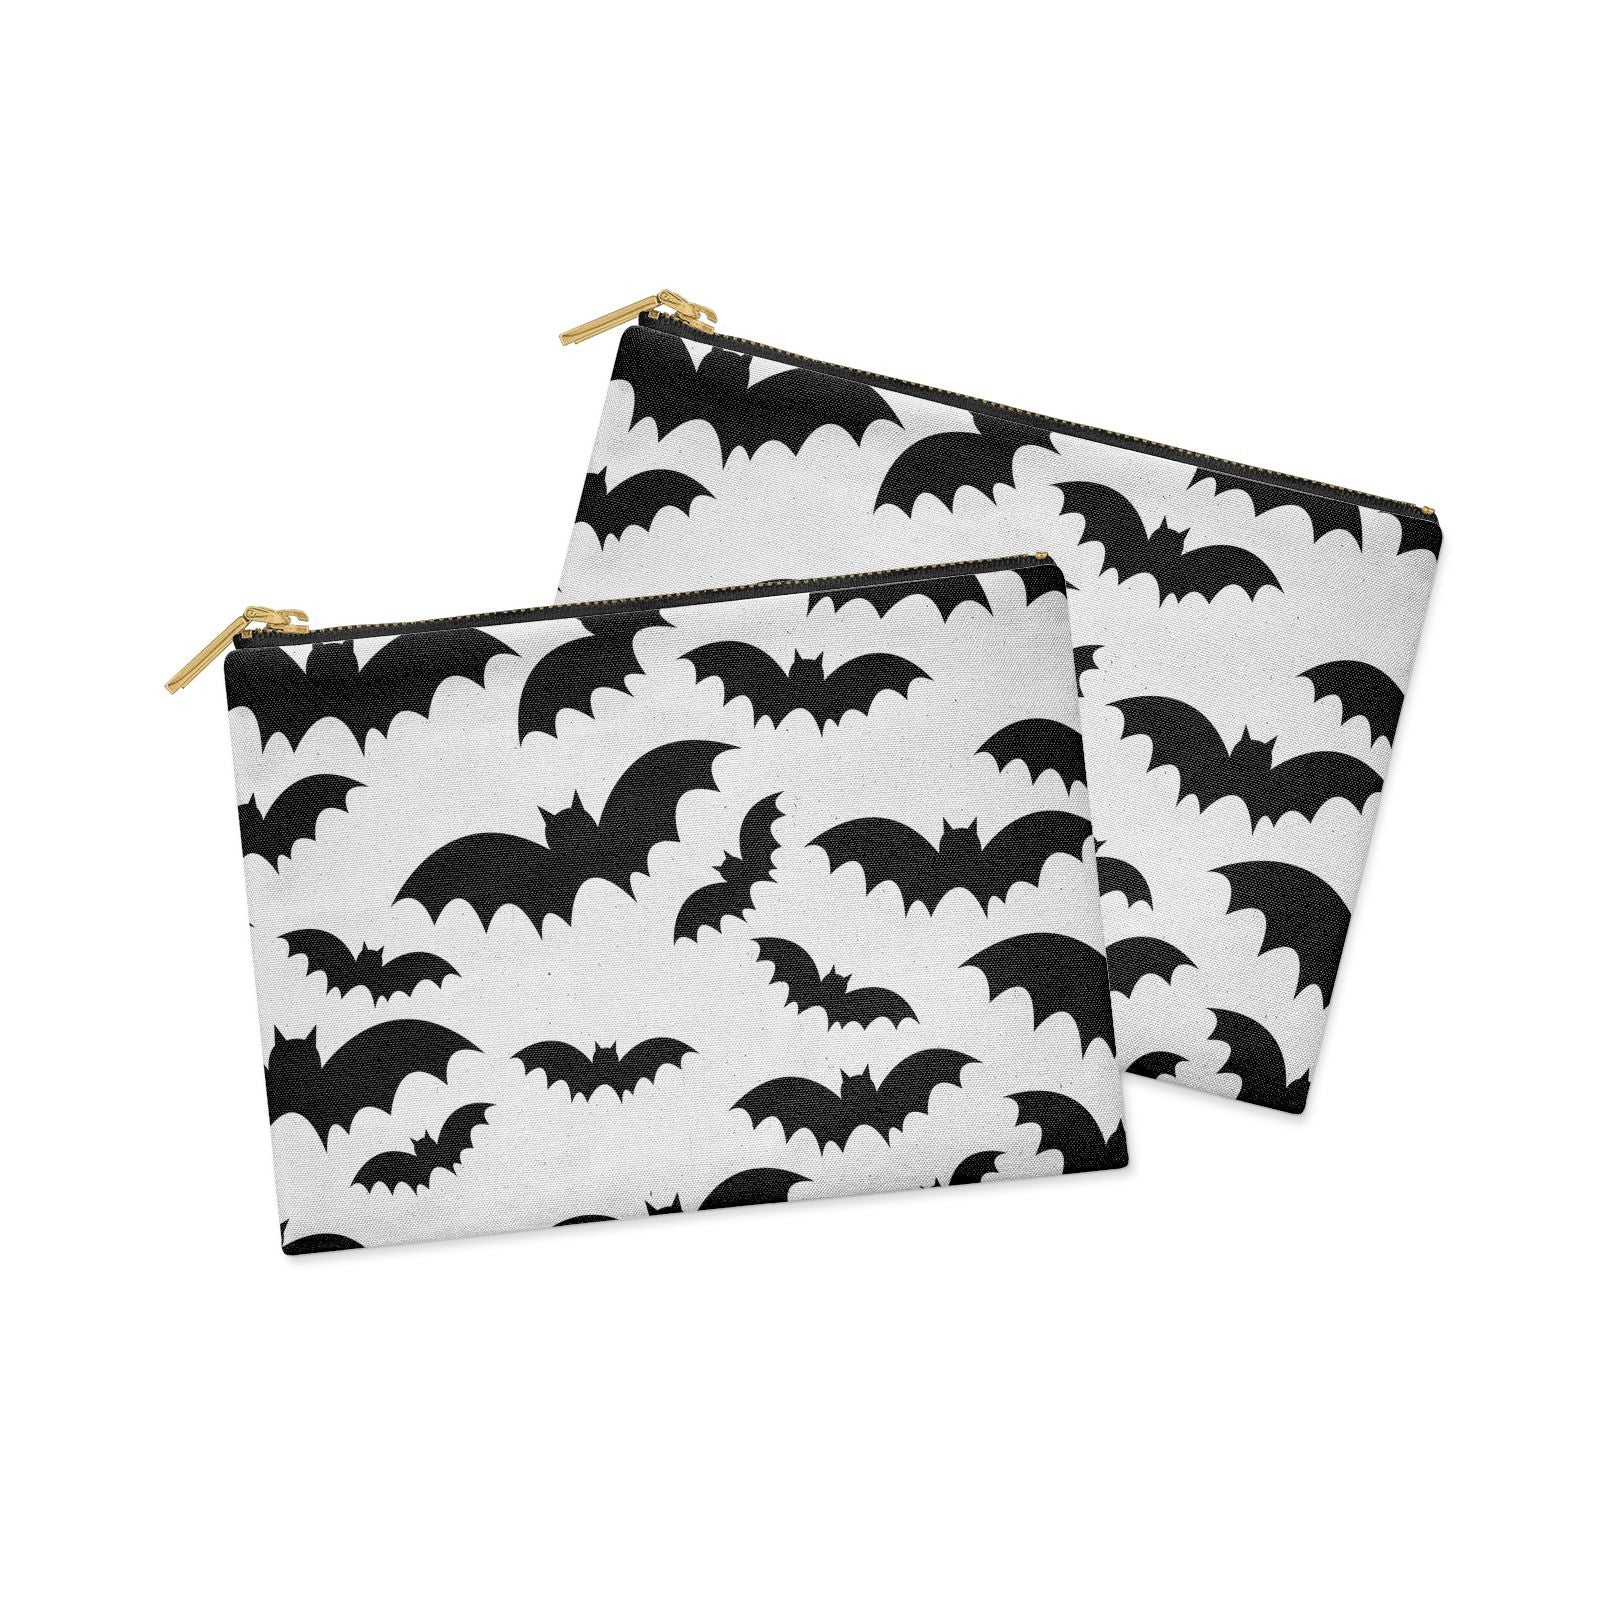 Bat Halloween Print Clutch Bag Zipper Pouch Alternative View